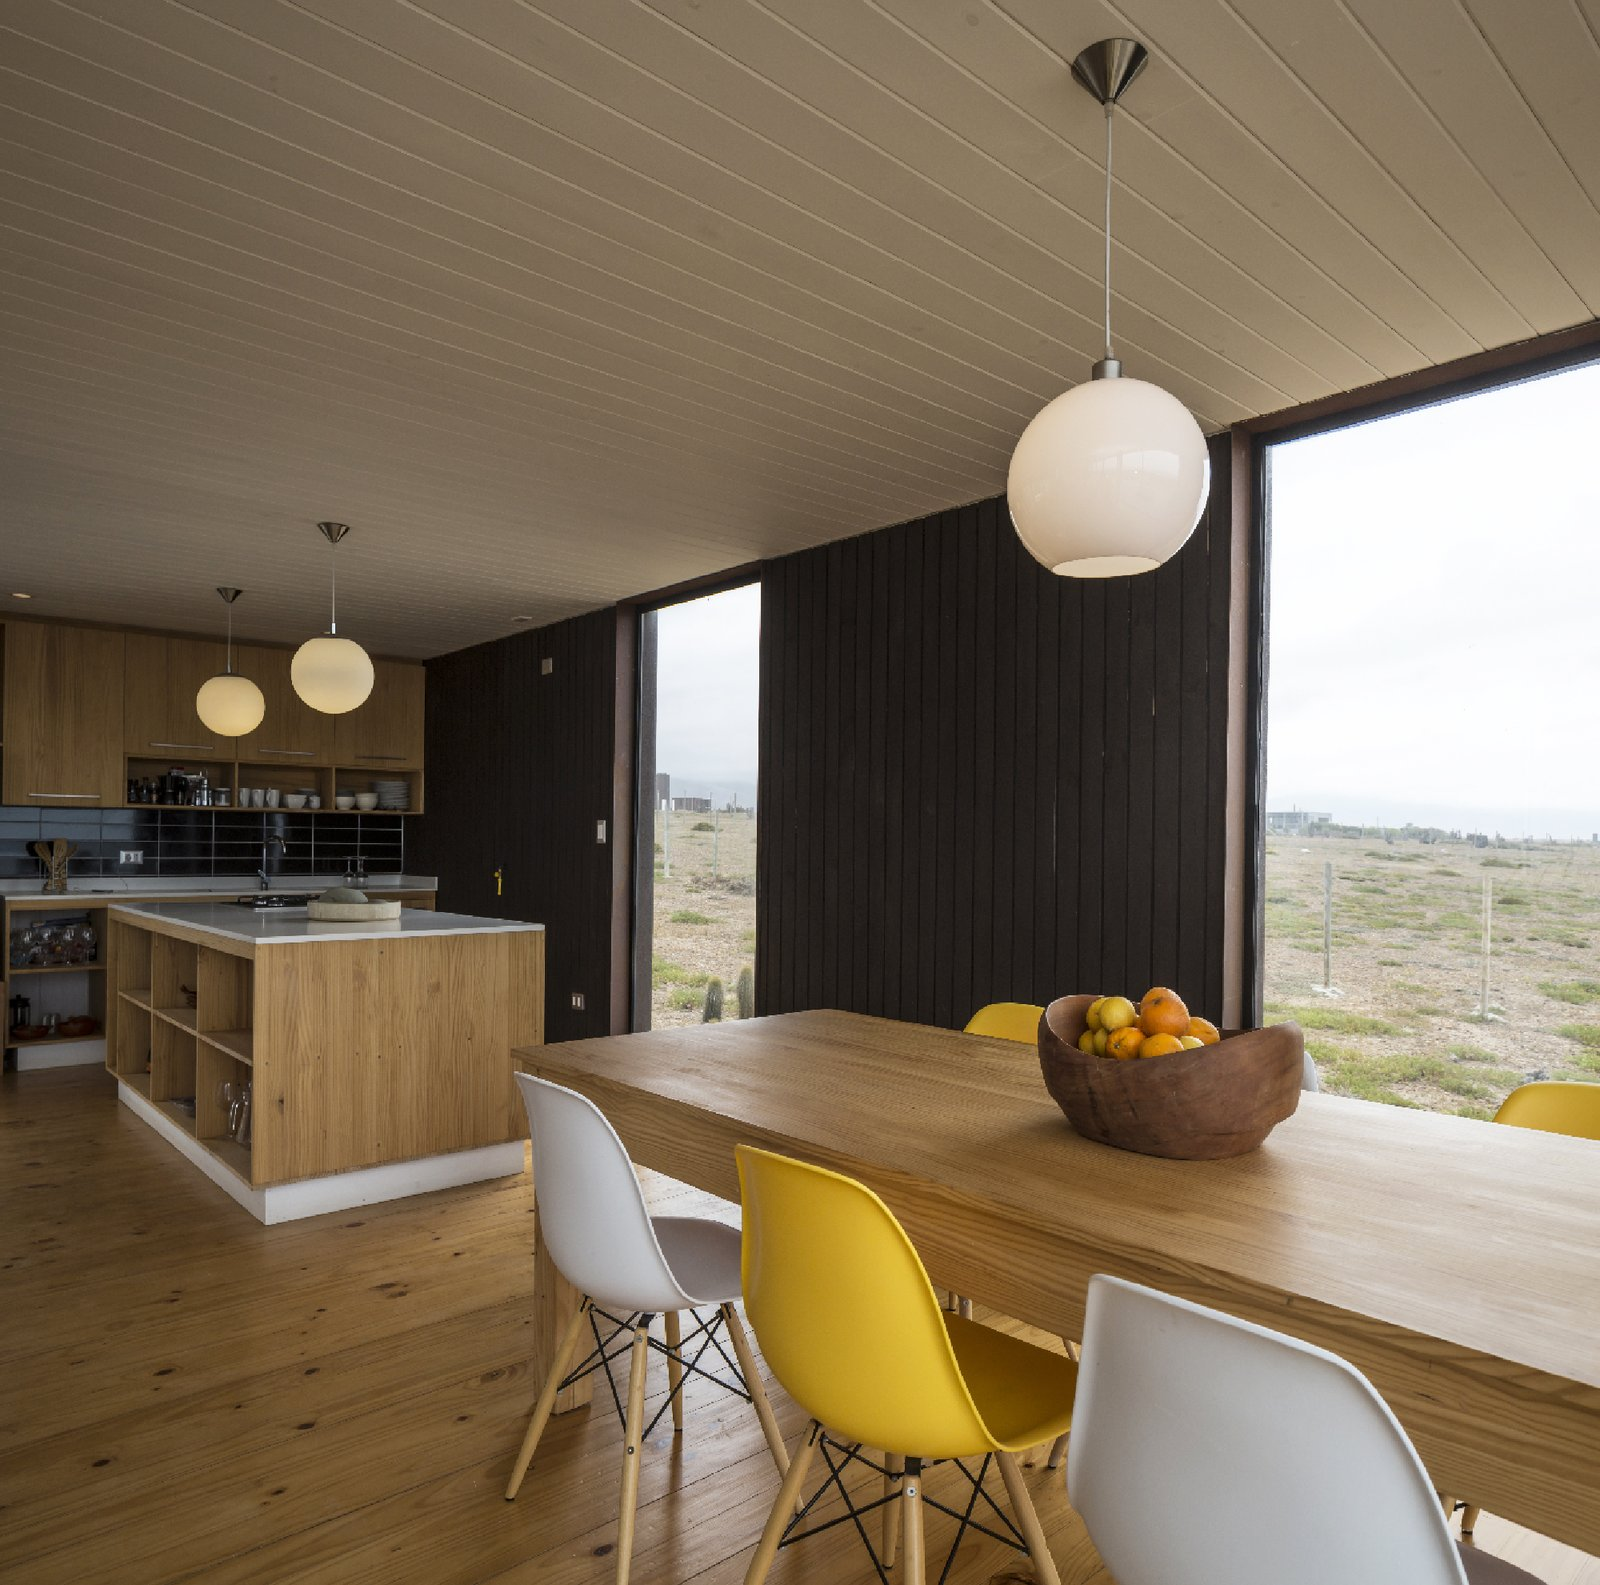 Eames DSW Molded Fiberglass chairs surround the dining table made of local wood and constructed by the owners.  Unplugged by Kelly Dawson